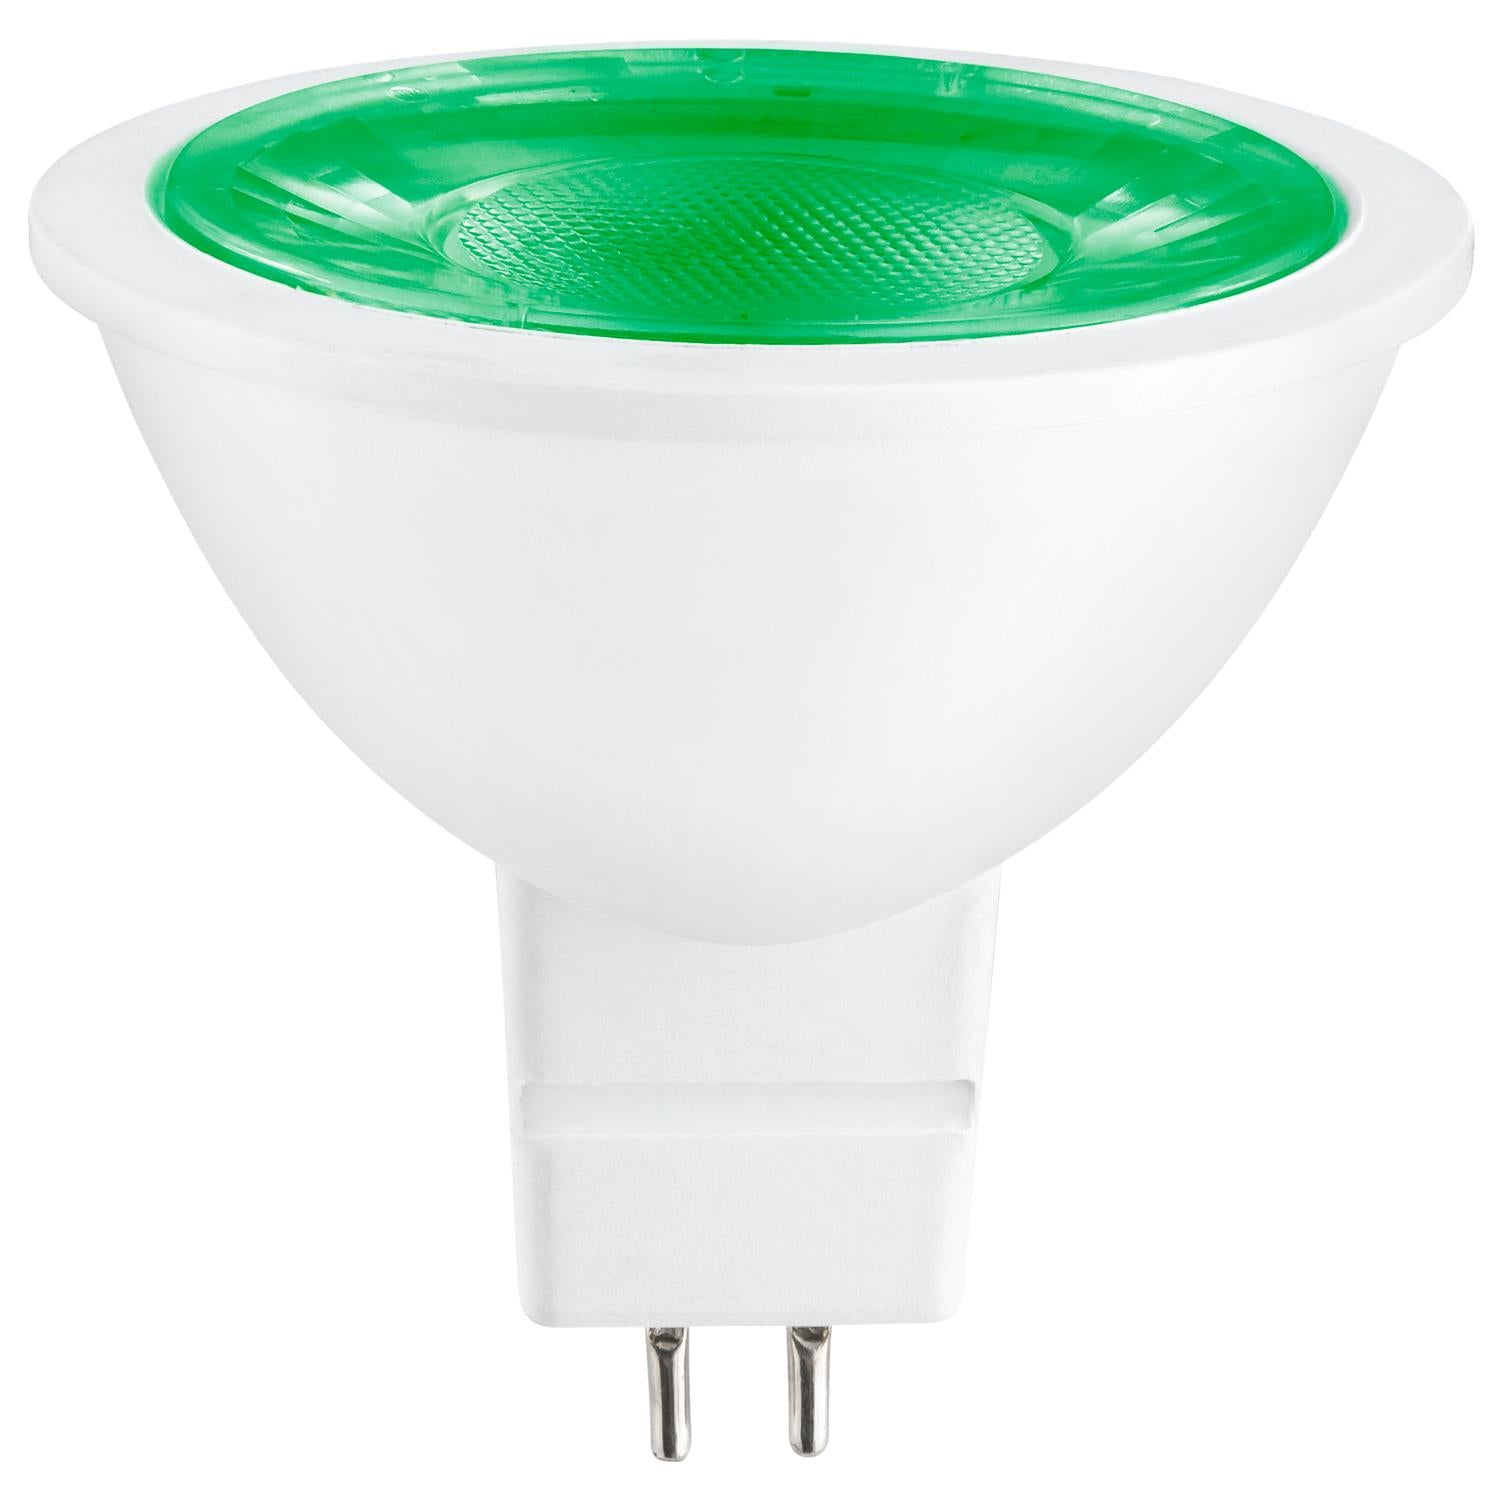 SUNLITE 3w 12v LED MR16 GU5.3 25-Watt Equivalent Green Light Bulb